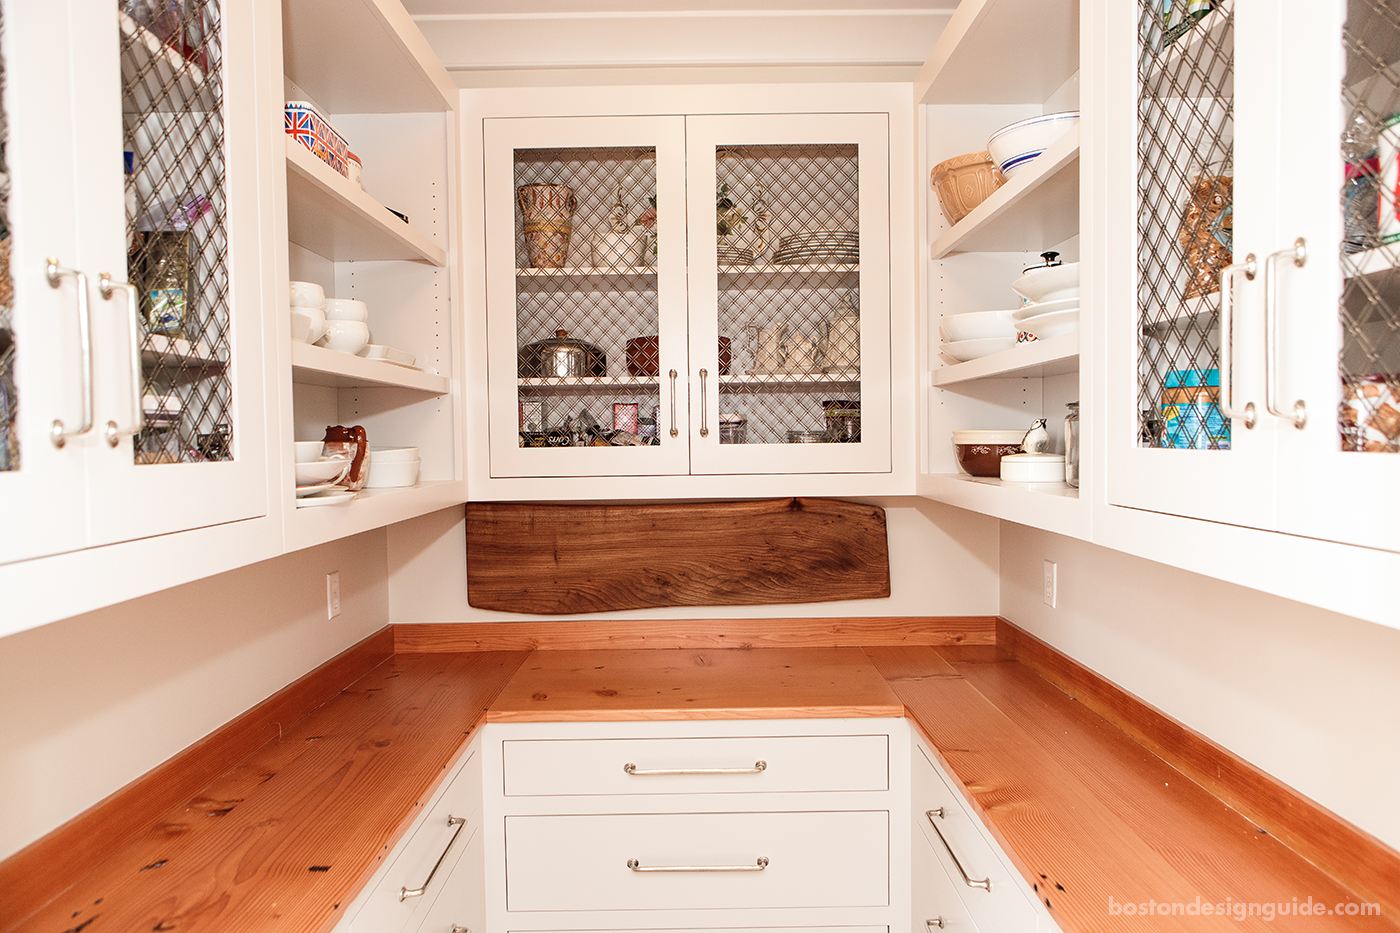 Building Your Dream Kitchen: Dream Kitchen Must-Have: Walk-In Pantry